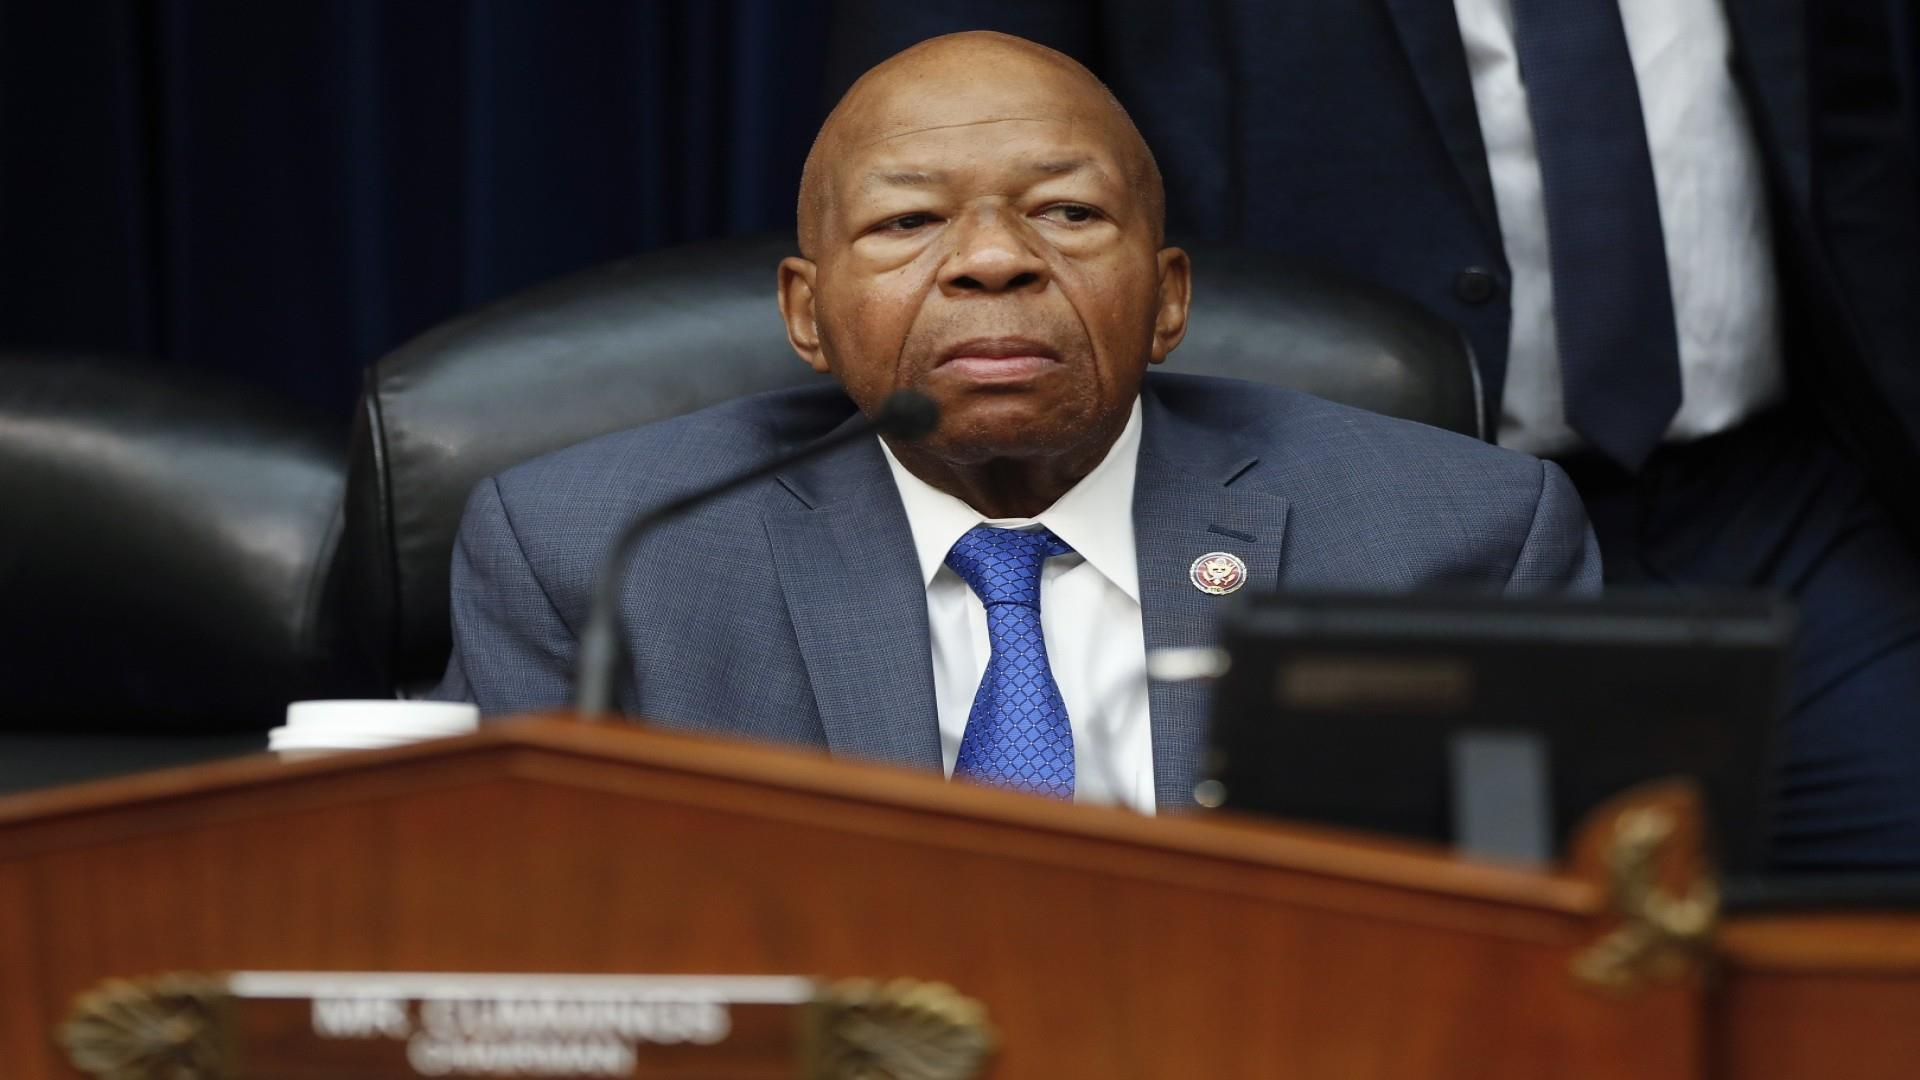 Cummings: Cohen's testimony is 'deeply disturbing,' should be troubling 'to all Americans'